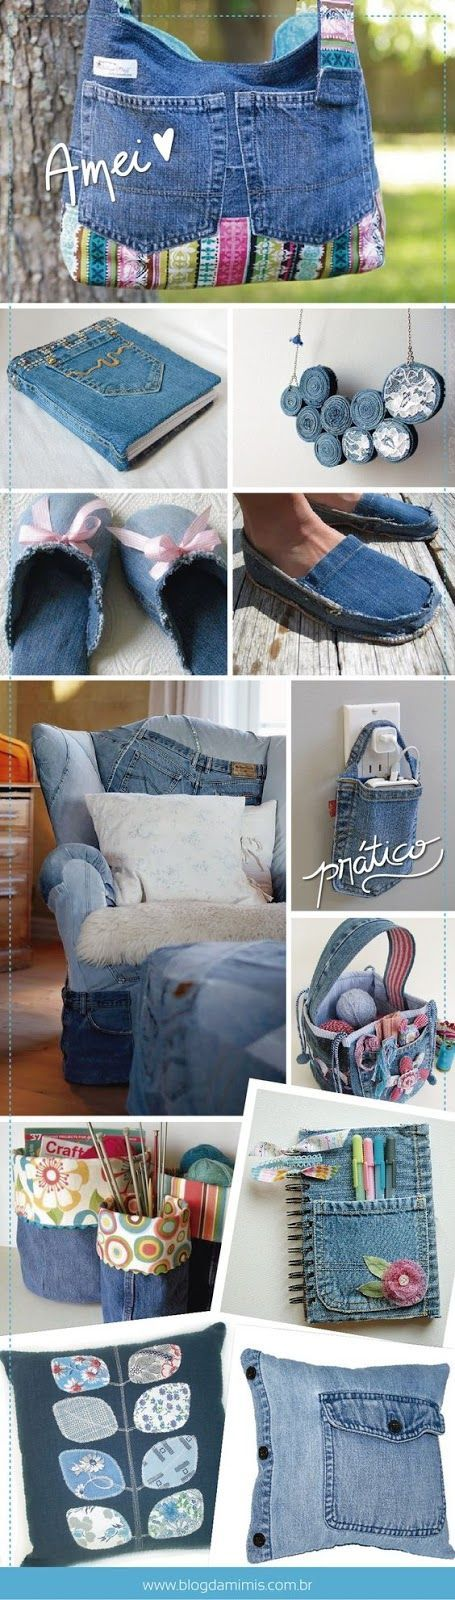 20 Best Old Jeans DIY to recycle old jeans | All in One Guide | Page 6